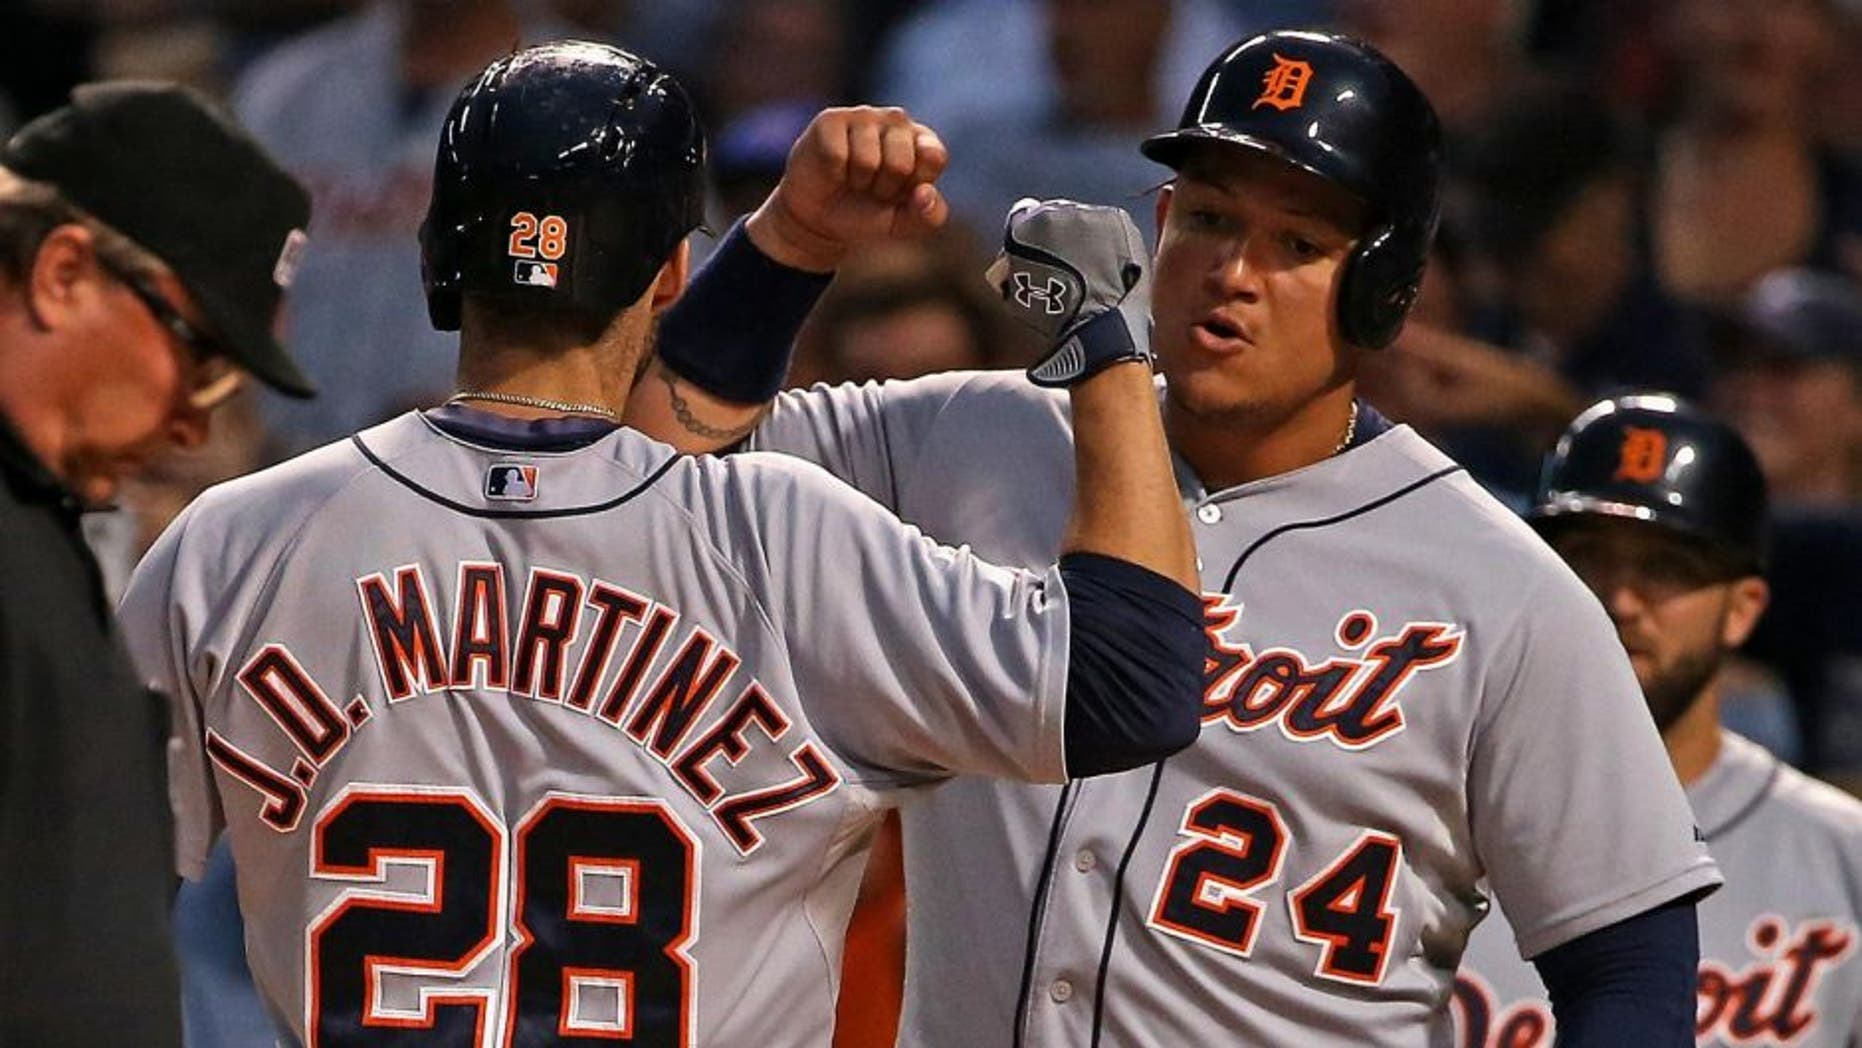 CHICAGO, IL - AUGUST 18: J.D. Martinez #28 of the Detroit Tigers is greeted by Miguel Cabrera #24 after he hit a two-run home run in the 1st inning against the Chicago Cubs at Wrigley Field on August 18, 2015 in Chicago, Illinois. (Photo by Jonathan Daniel/Getty Images)